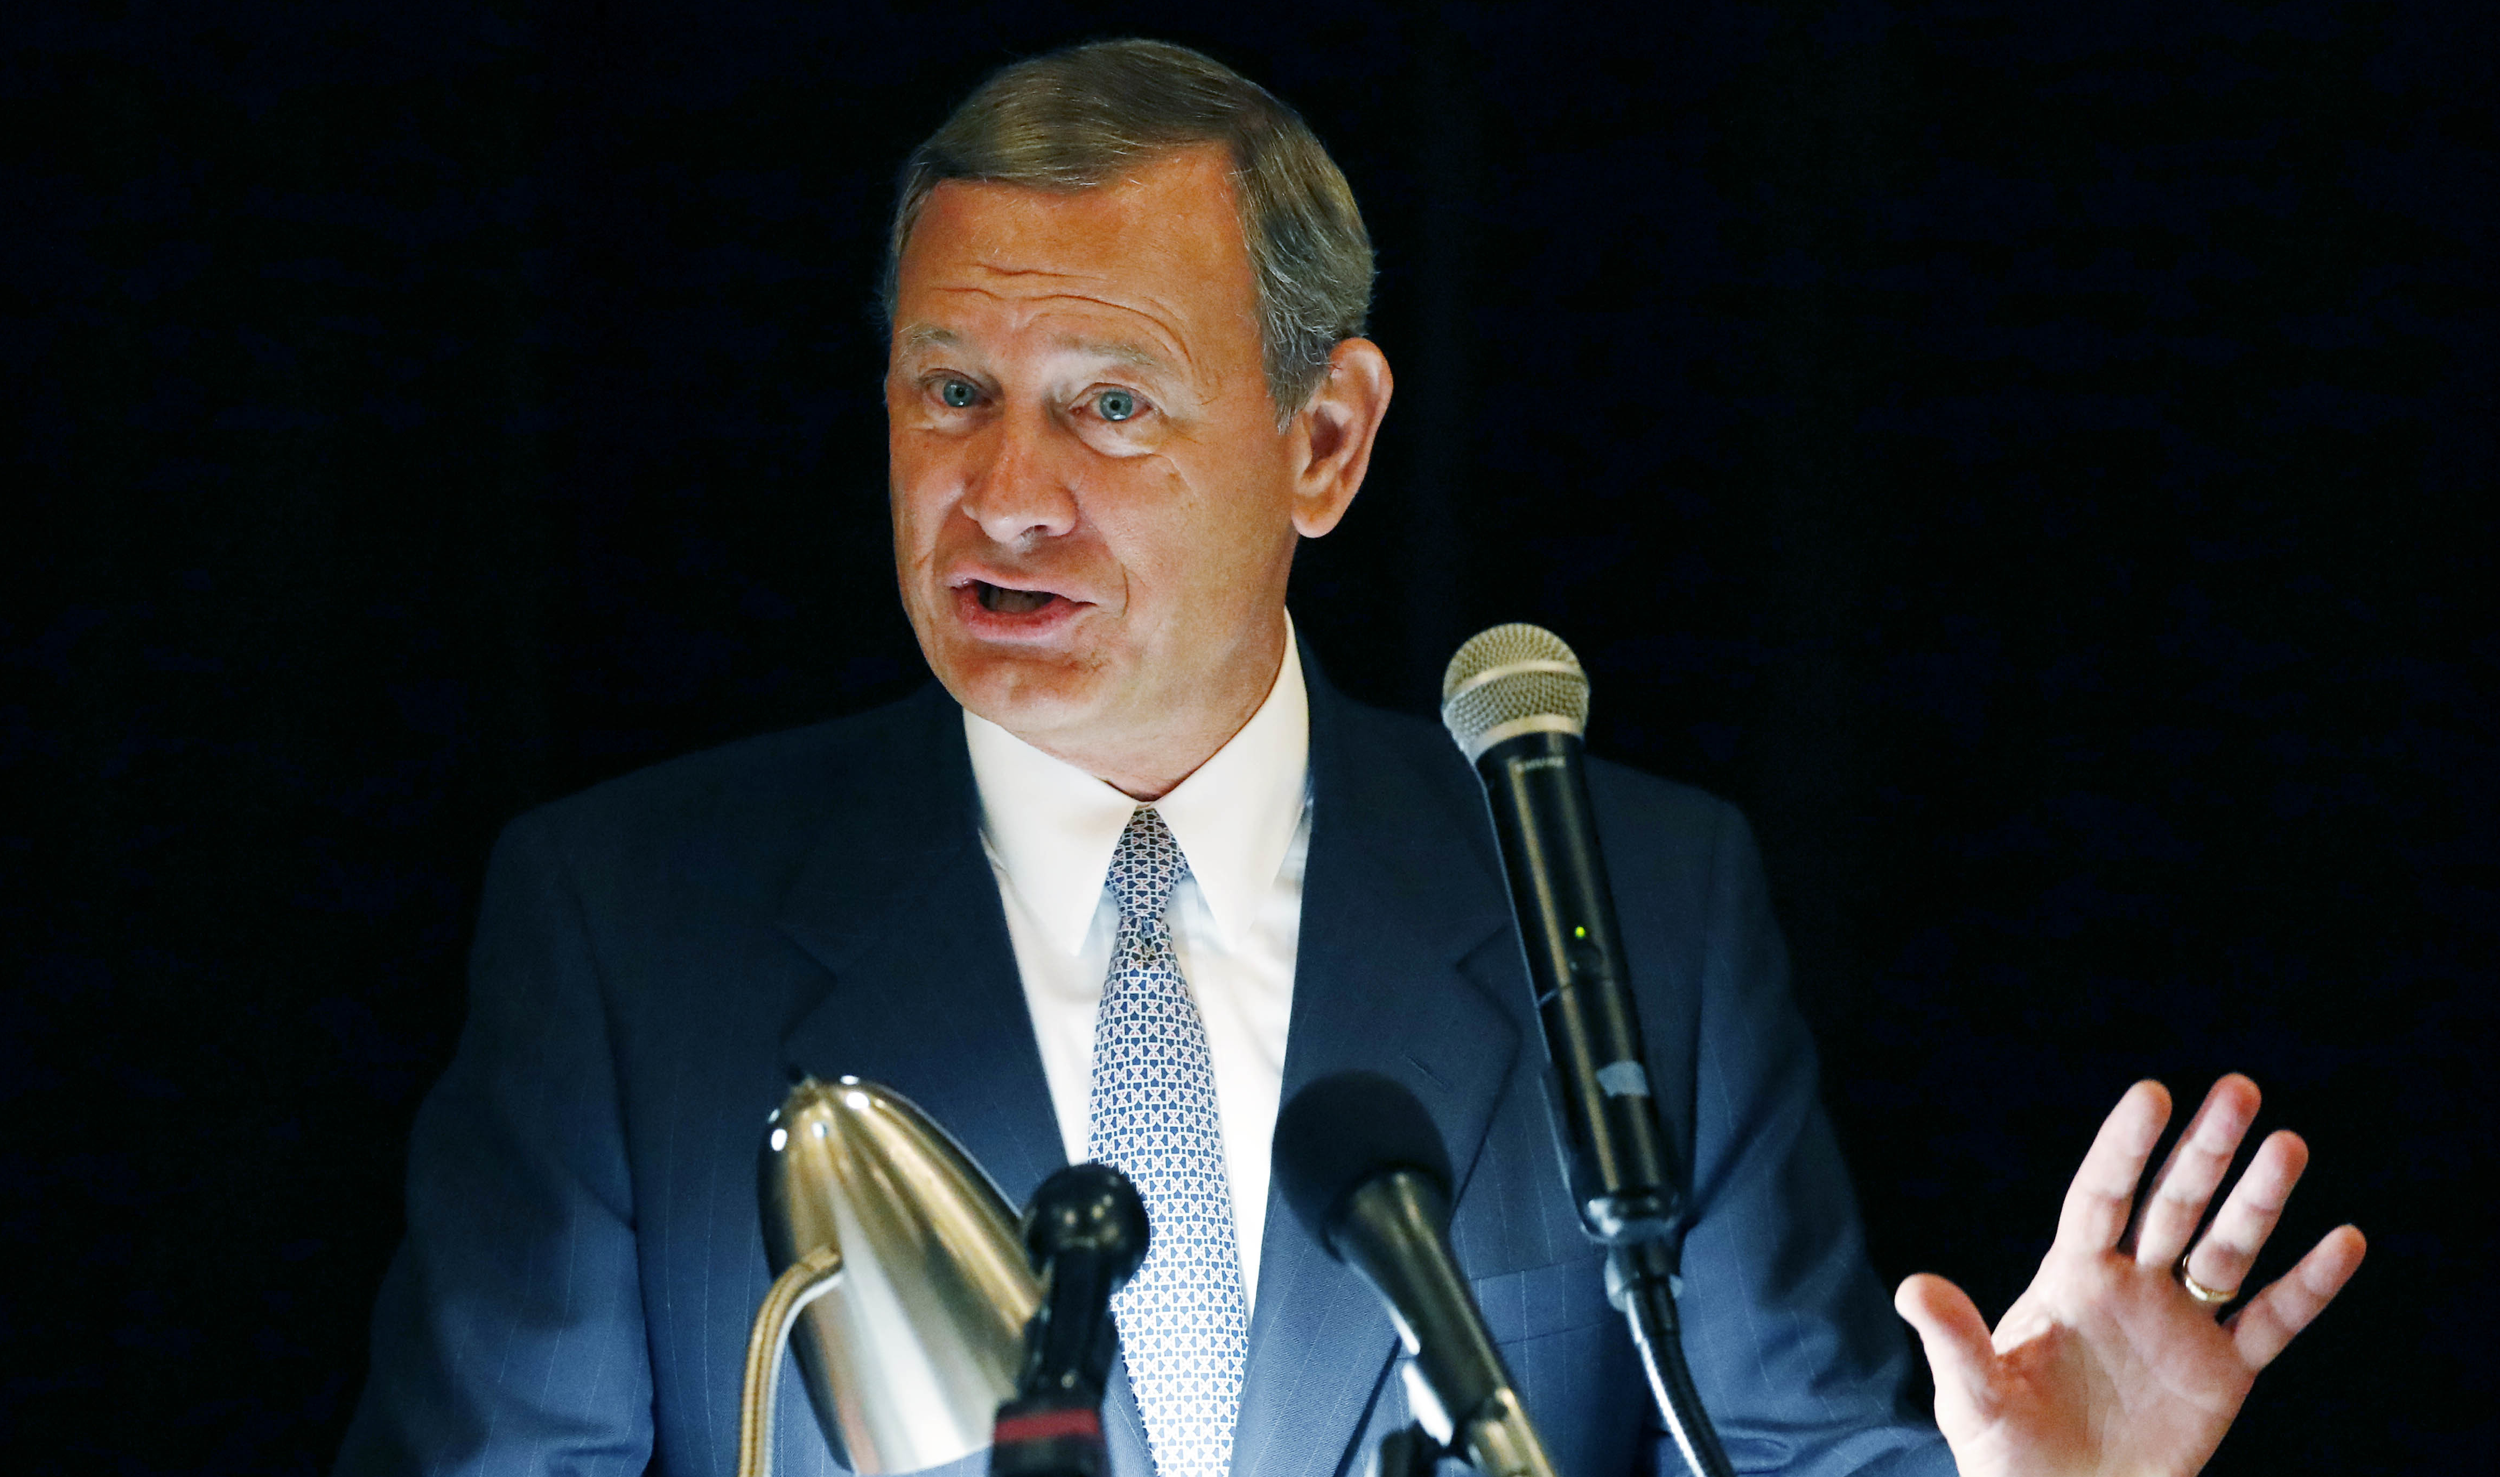 Chief Justice John Roberts speaks during the Bicentennial of Mississippi's Judiciary and Legal Profession Banquet in Jackson, Mississippi on  September 27, 2017.